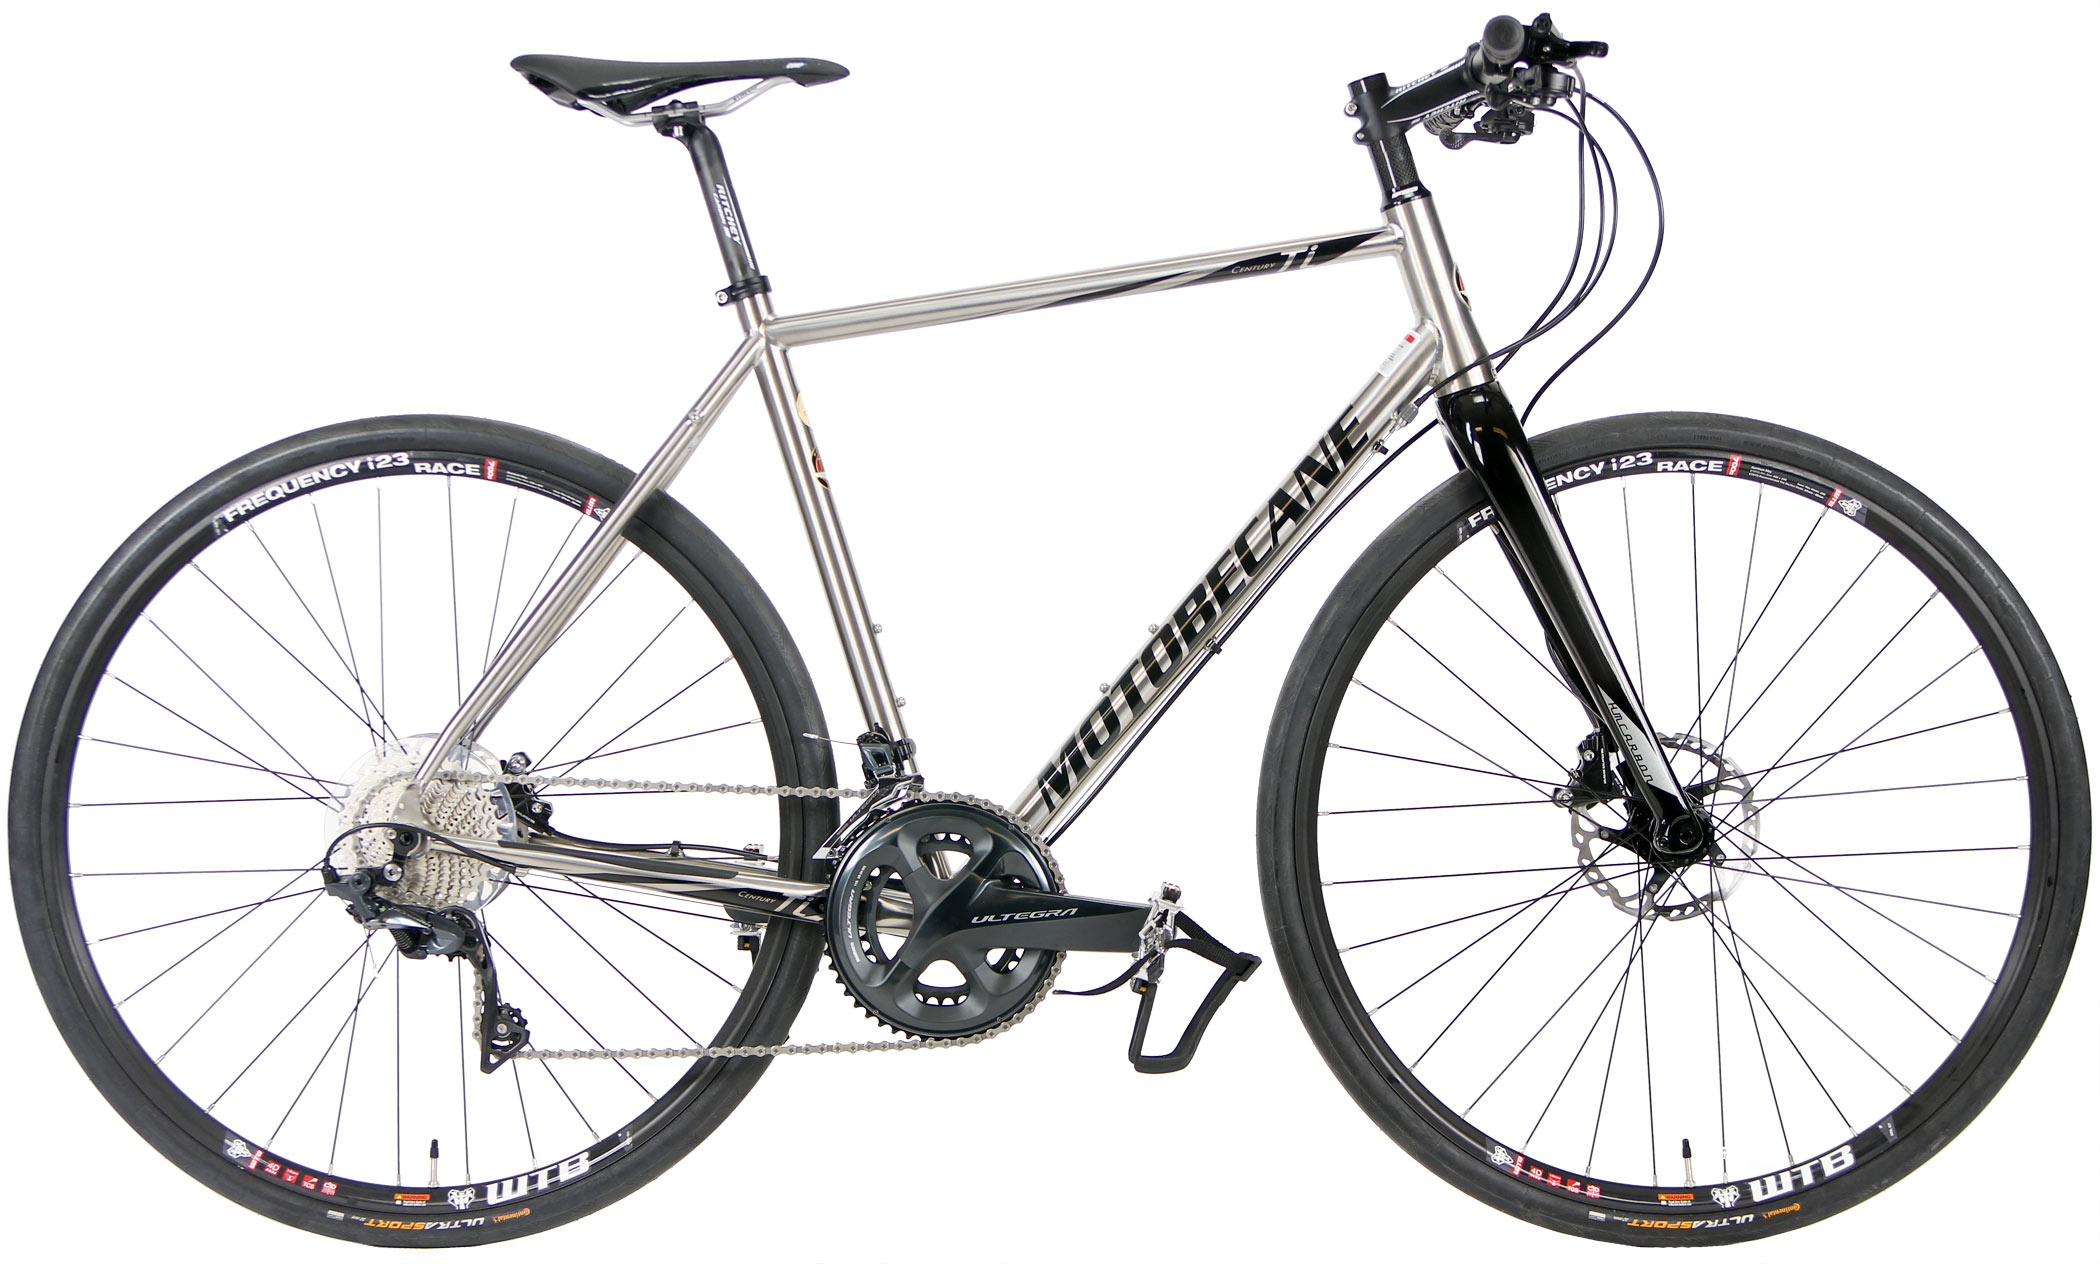 Bikes Motobecane Cafe Century Pro Ti Disc Brake Road Bike Image